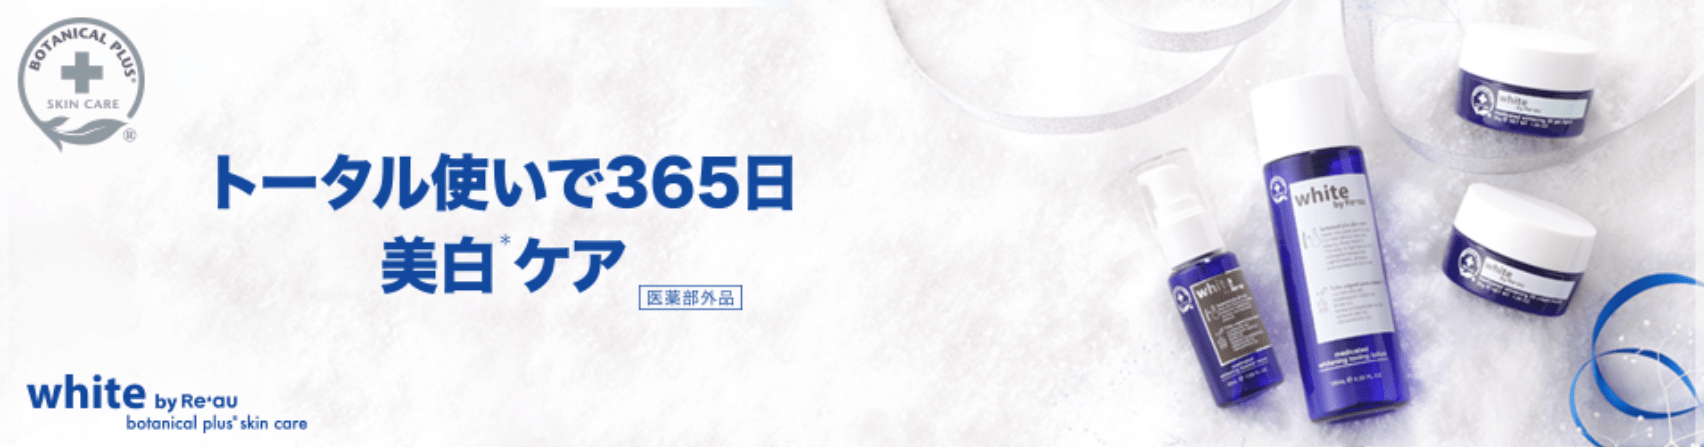 whitening-top-header.png